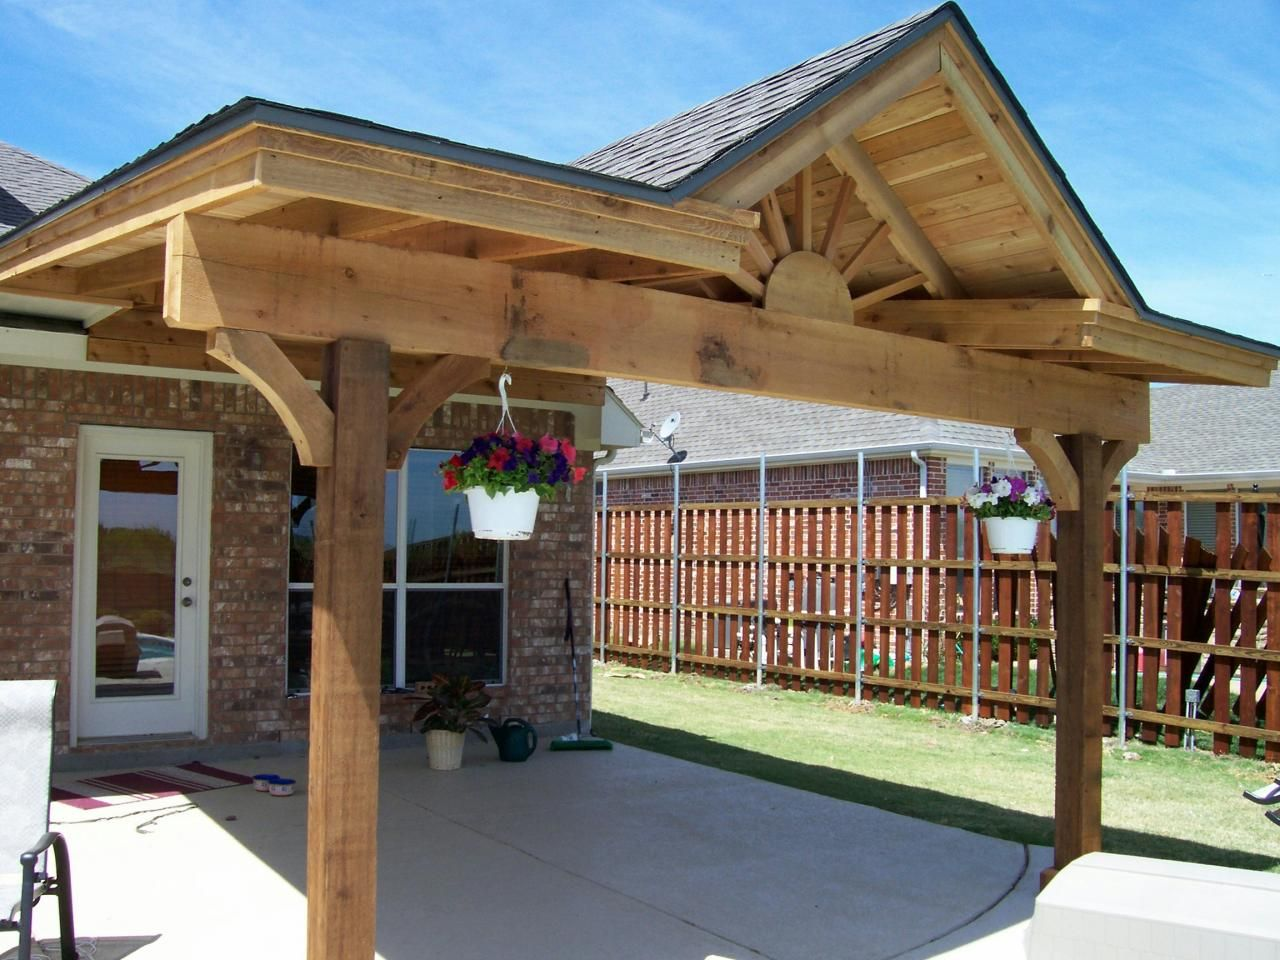 First Choice Construction - Patio Covers | Dream deck | Pinterest ...